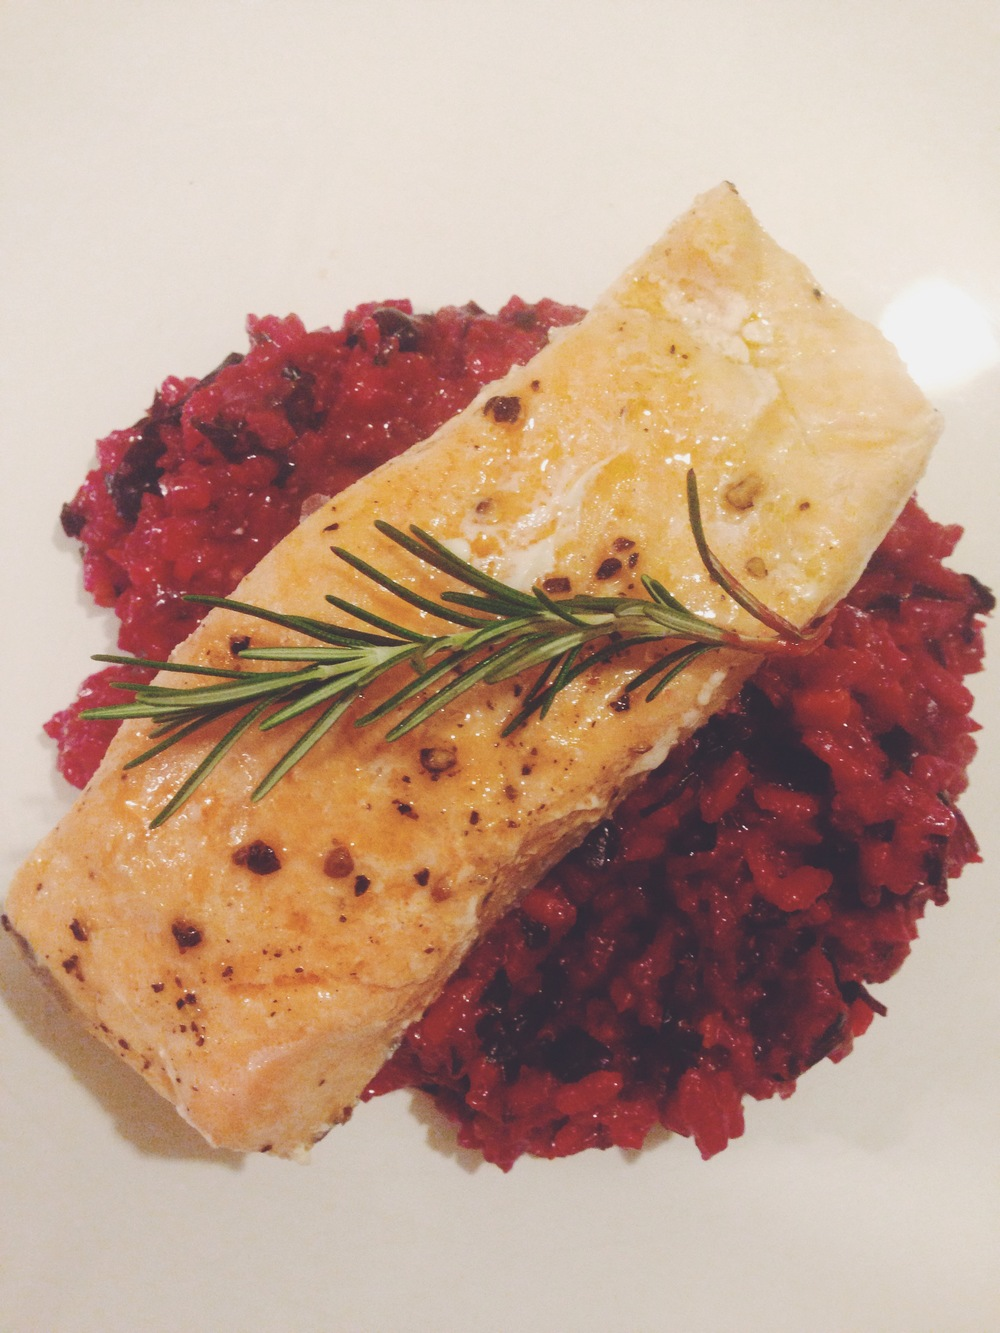 Chard+Beet Risotto topped with Baked Salmon